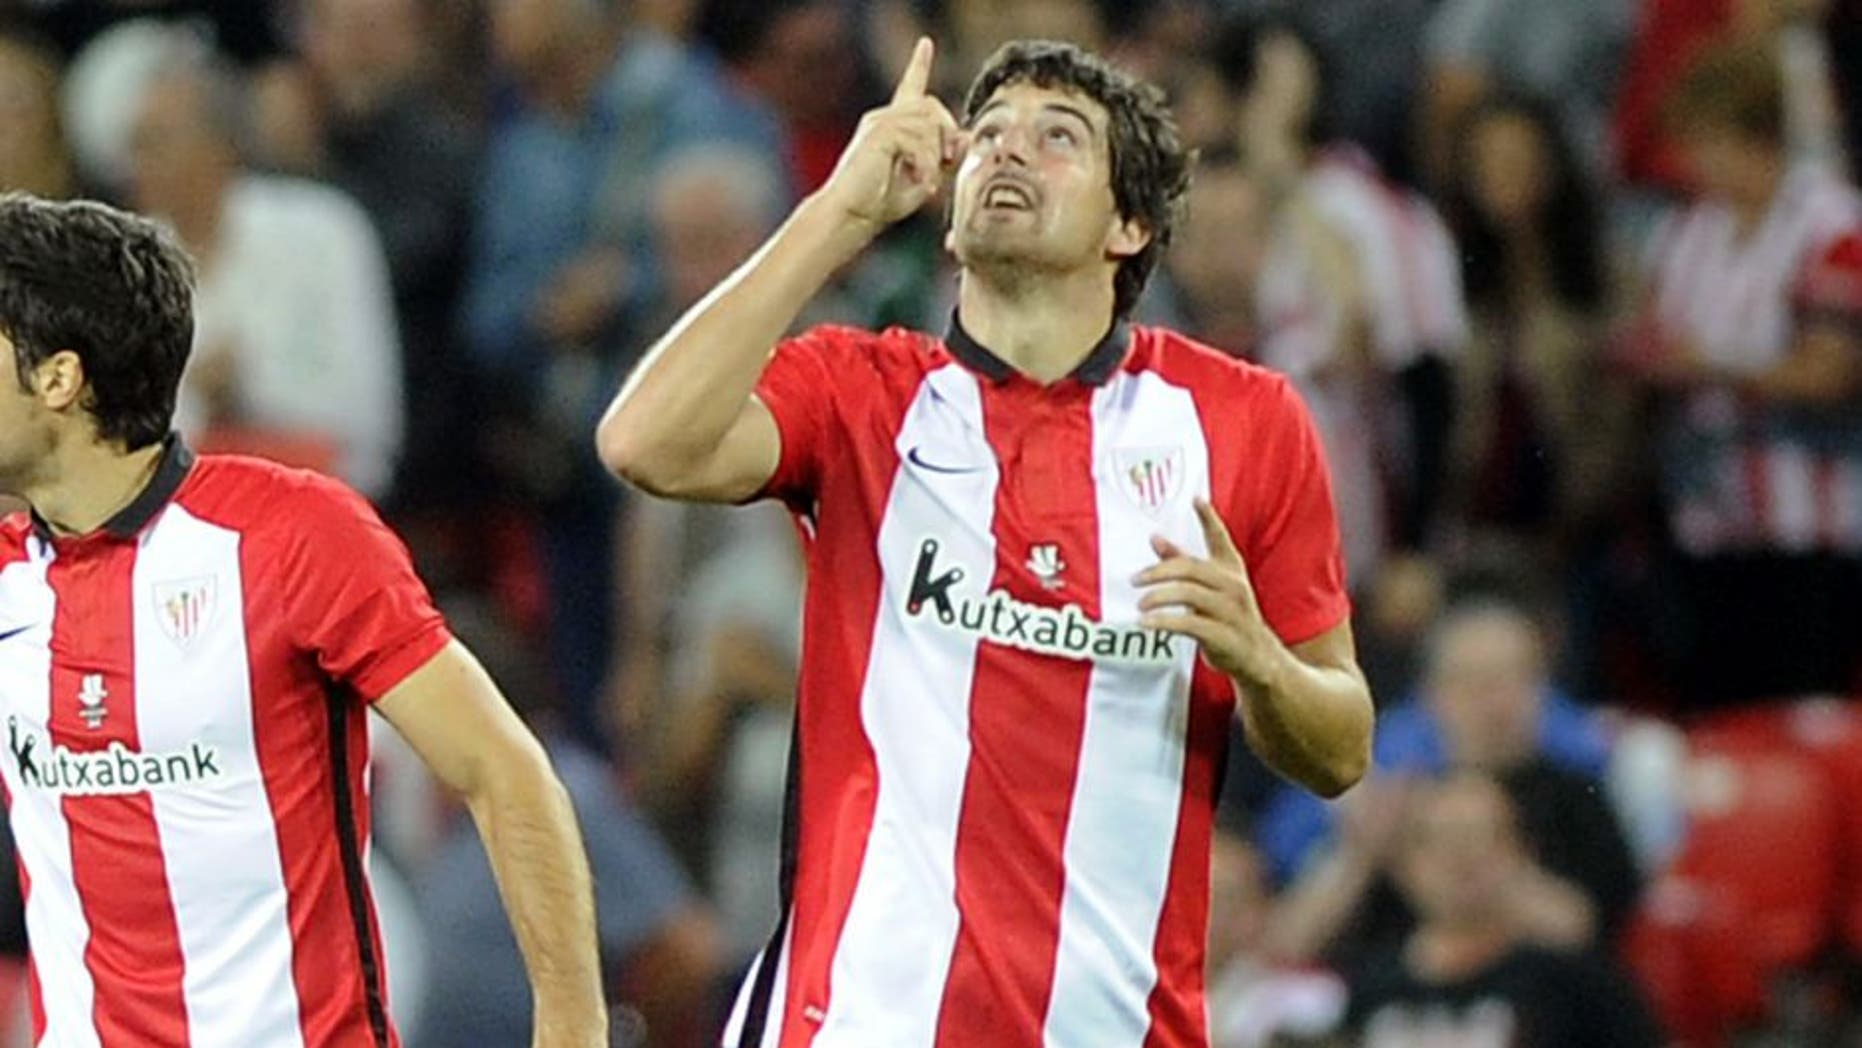 Athletic Bilbao's defender Mikel San Jose celebrates after scoring during the Spanish Supercup first-leg football match Athletic Club Bilbao vs FC Barcelona at the San Mames stadium in Bilbao on August 14, 2015. AFP PHOTO/ ANDER GILLENEA (Photo credit should read ANDER GILLENEA/AFP/Getty Images)